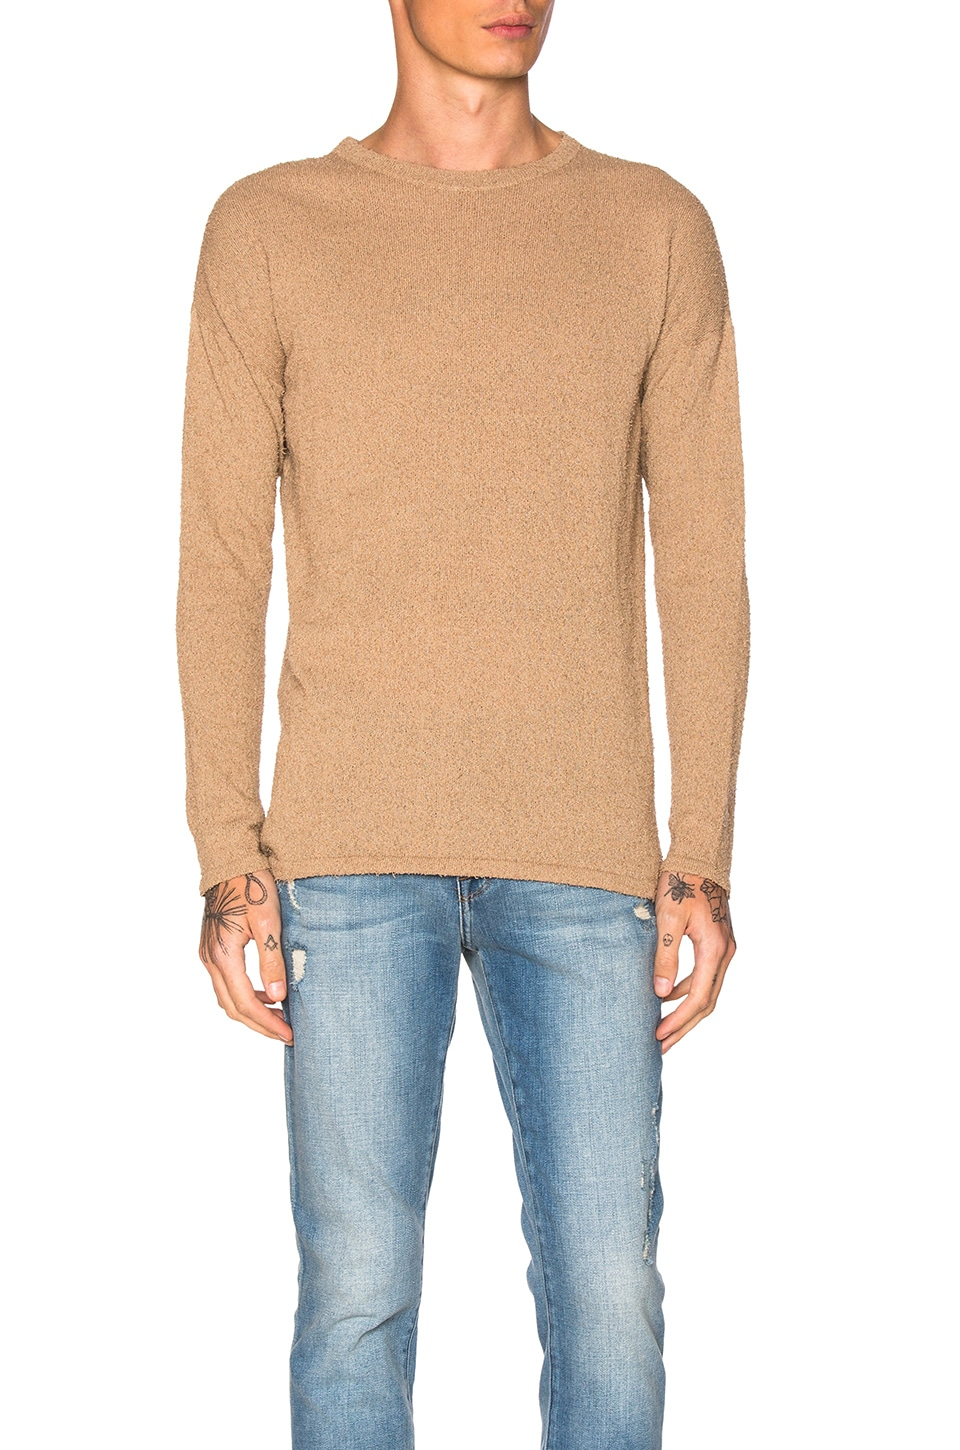 Pigtail Mercer Sweater by JOHN ELLIOTT